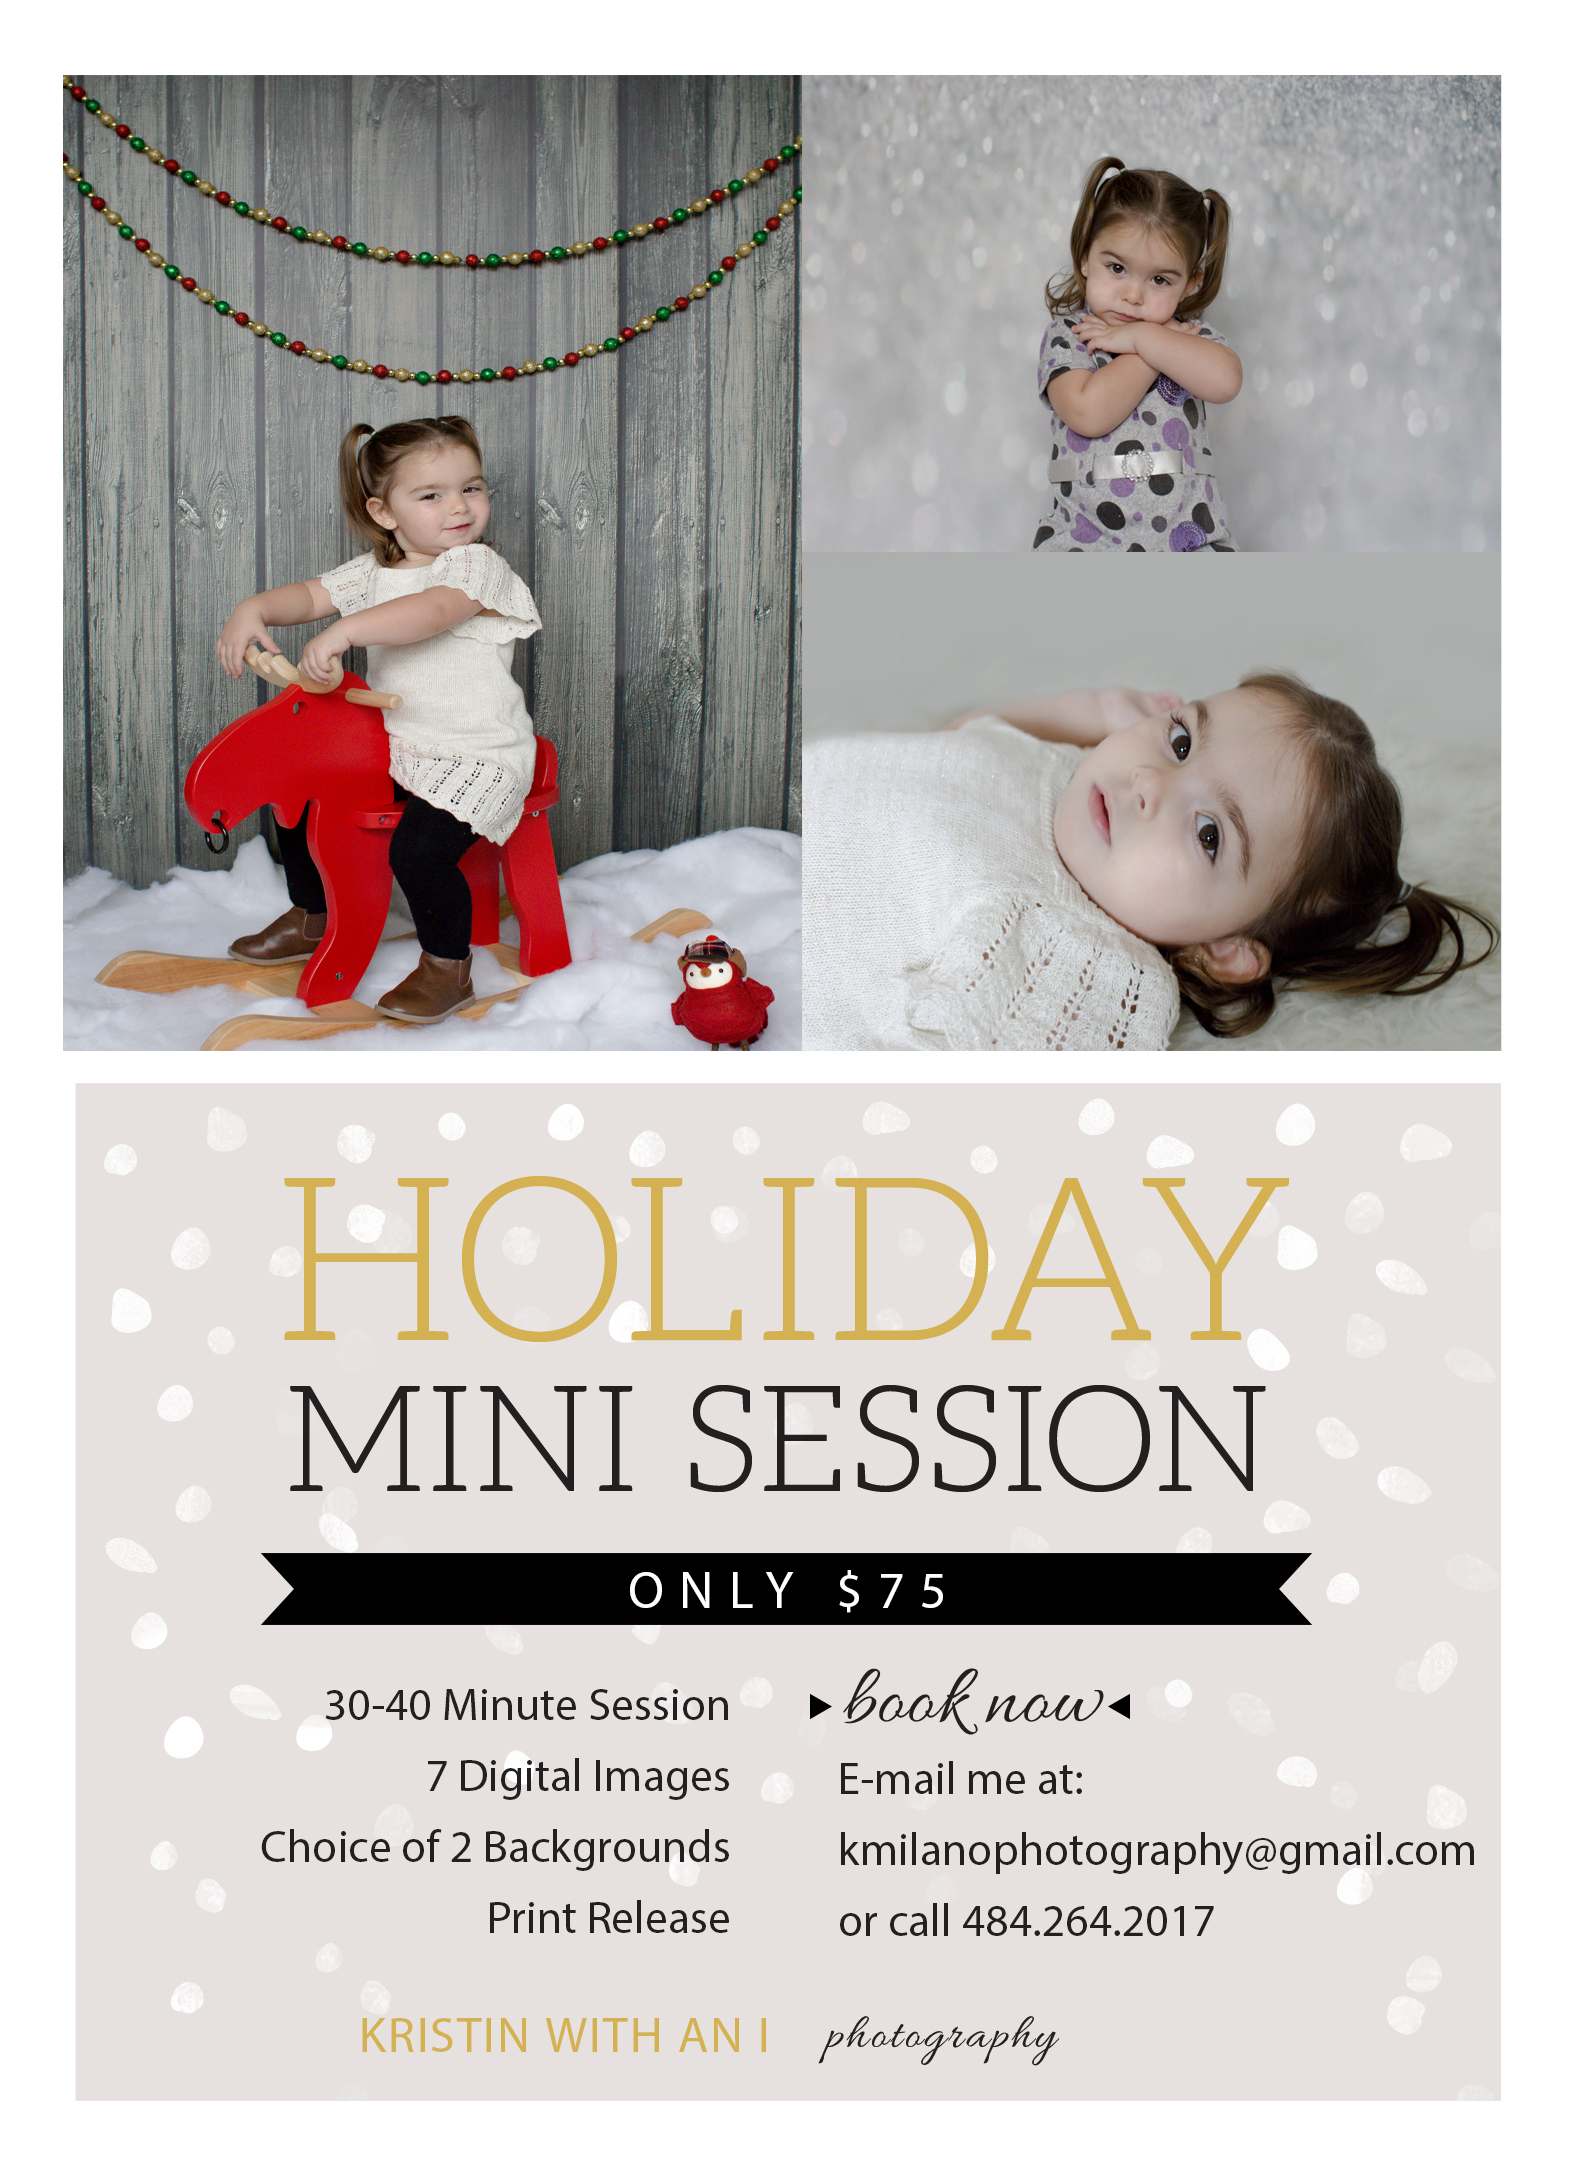 Kristin with an I Photography is a Lehigh and Northampton County Child Photographer who enjoys Lehigh and Northampton County Child Photography. To book your 2014 Holiday Mini Session, please contact Kristin at kmilanophotography@gmail.com